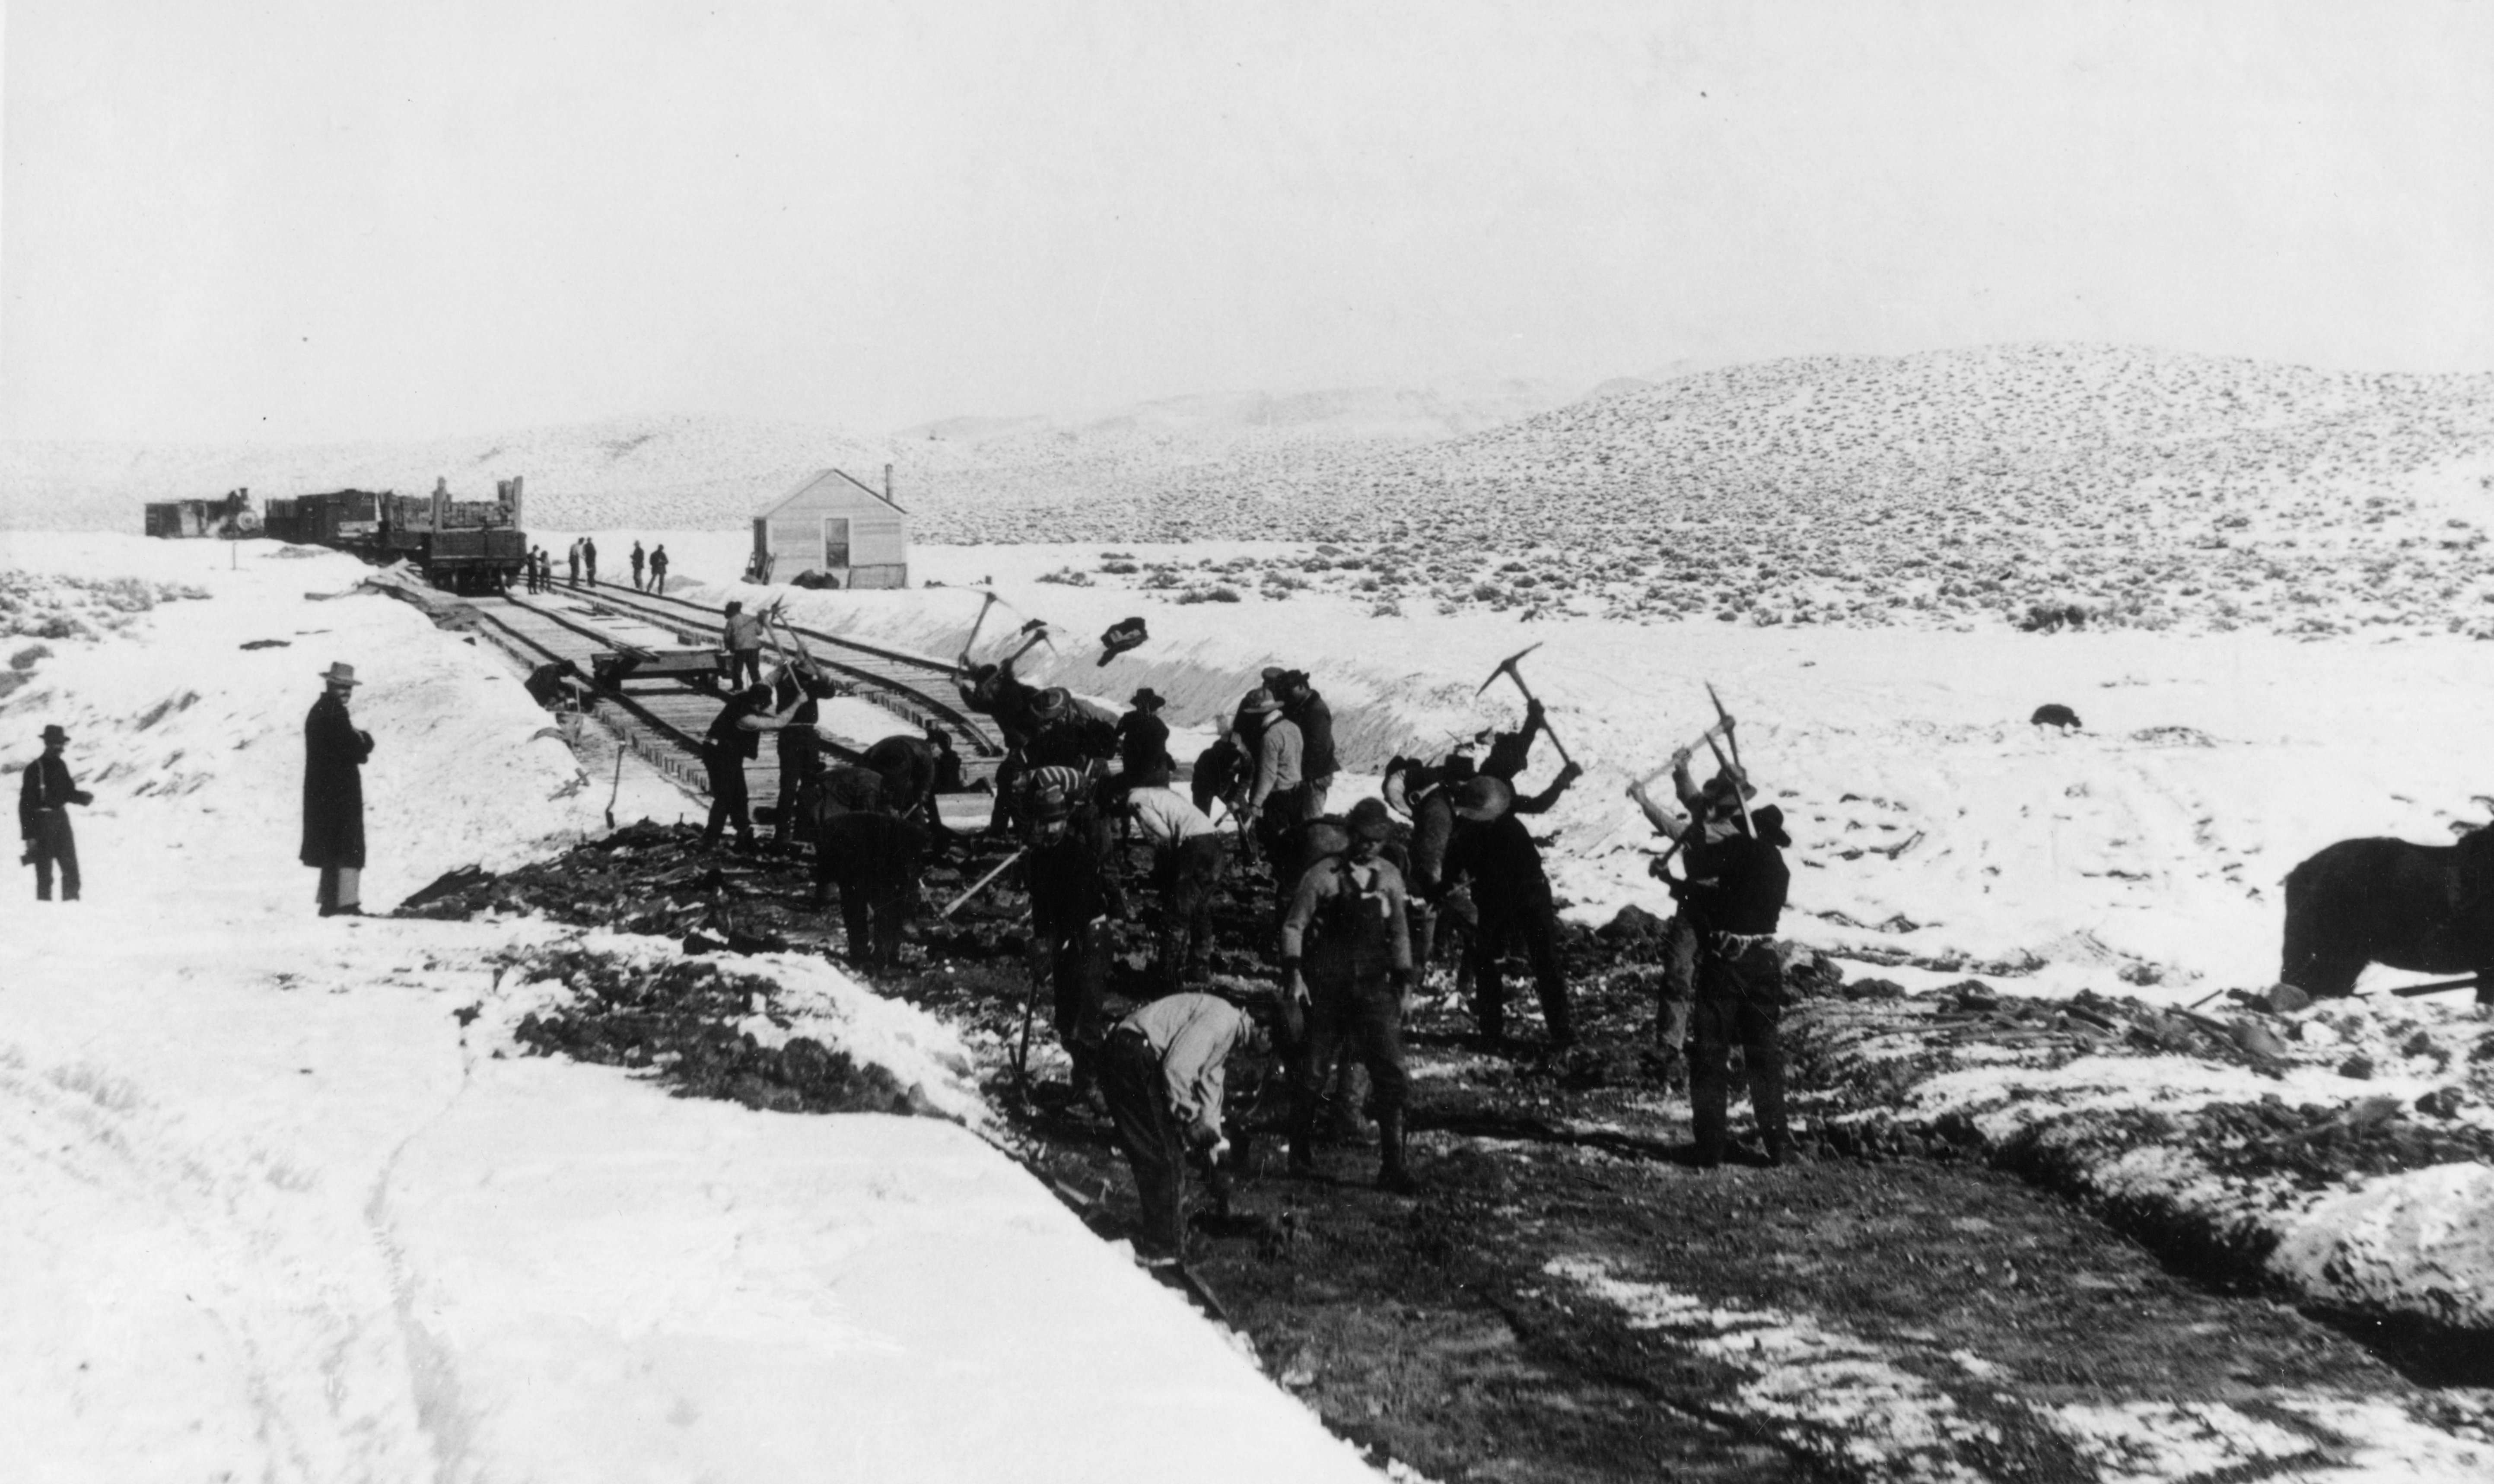 Workers construct the Deep Creek Railroad in Nevada.